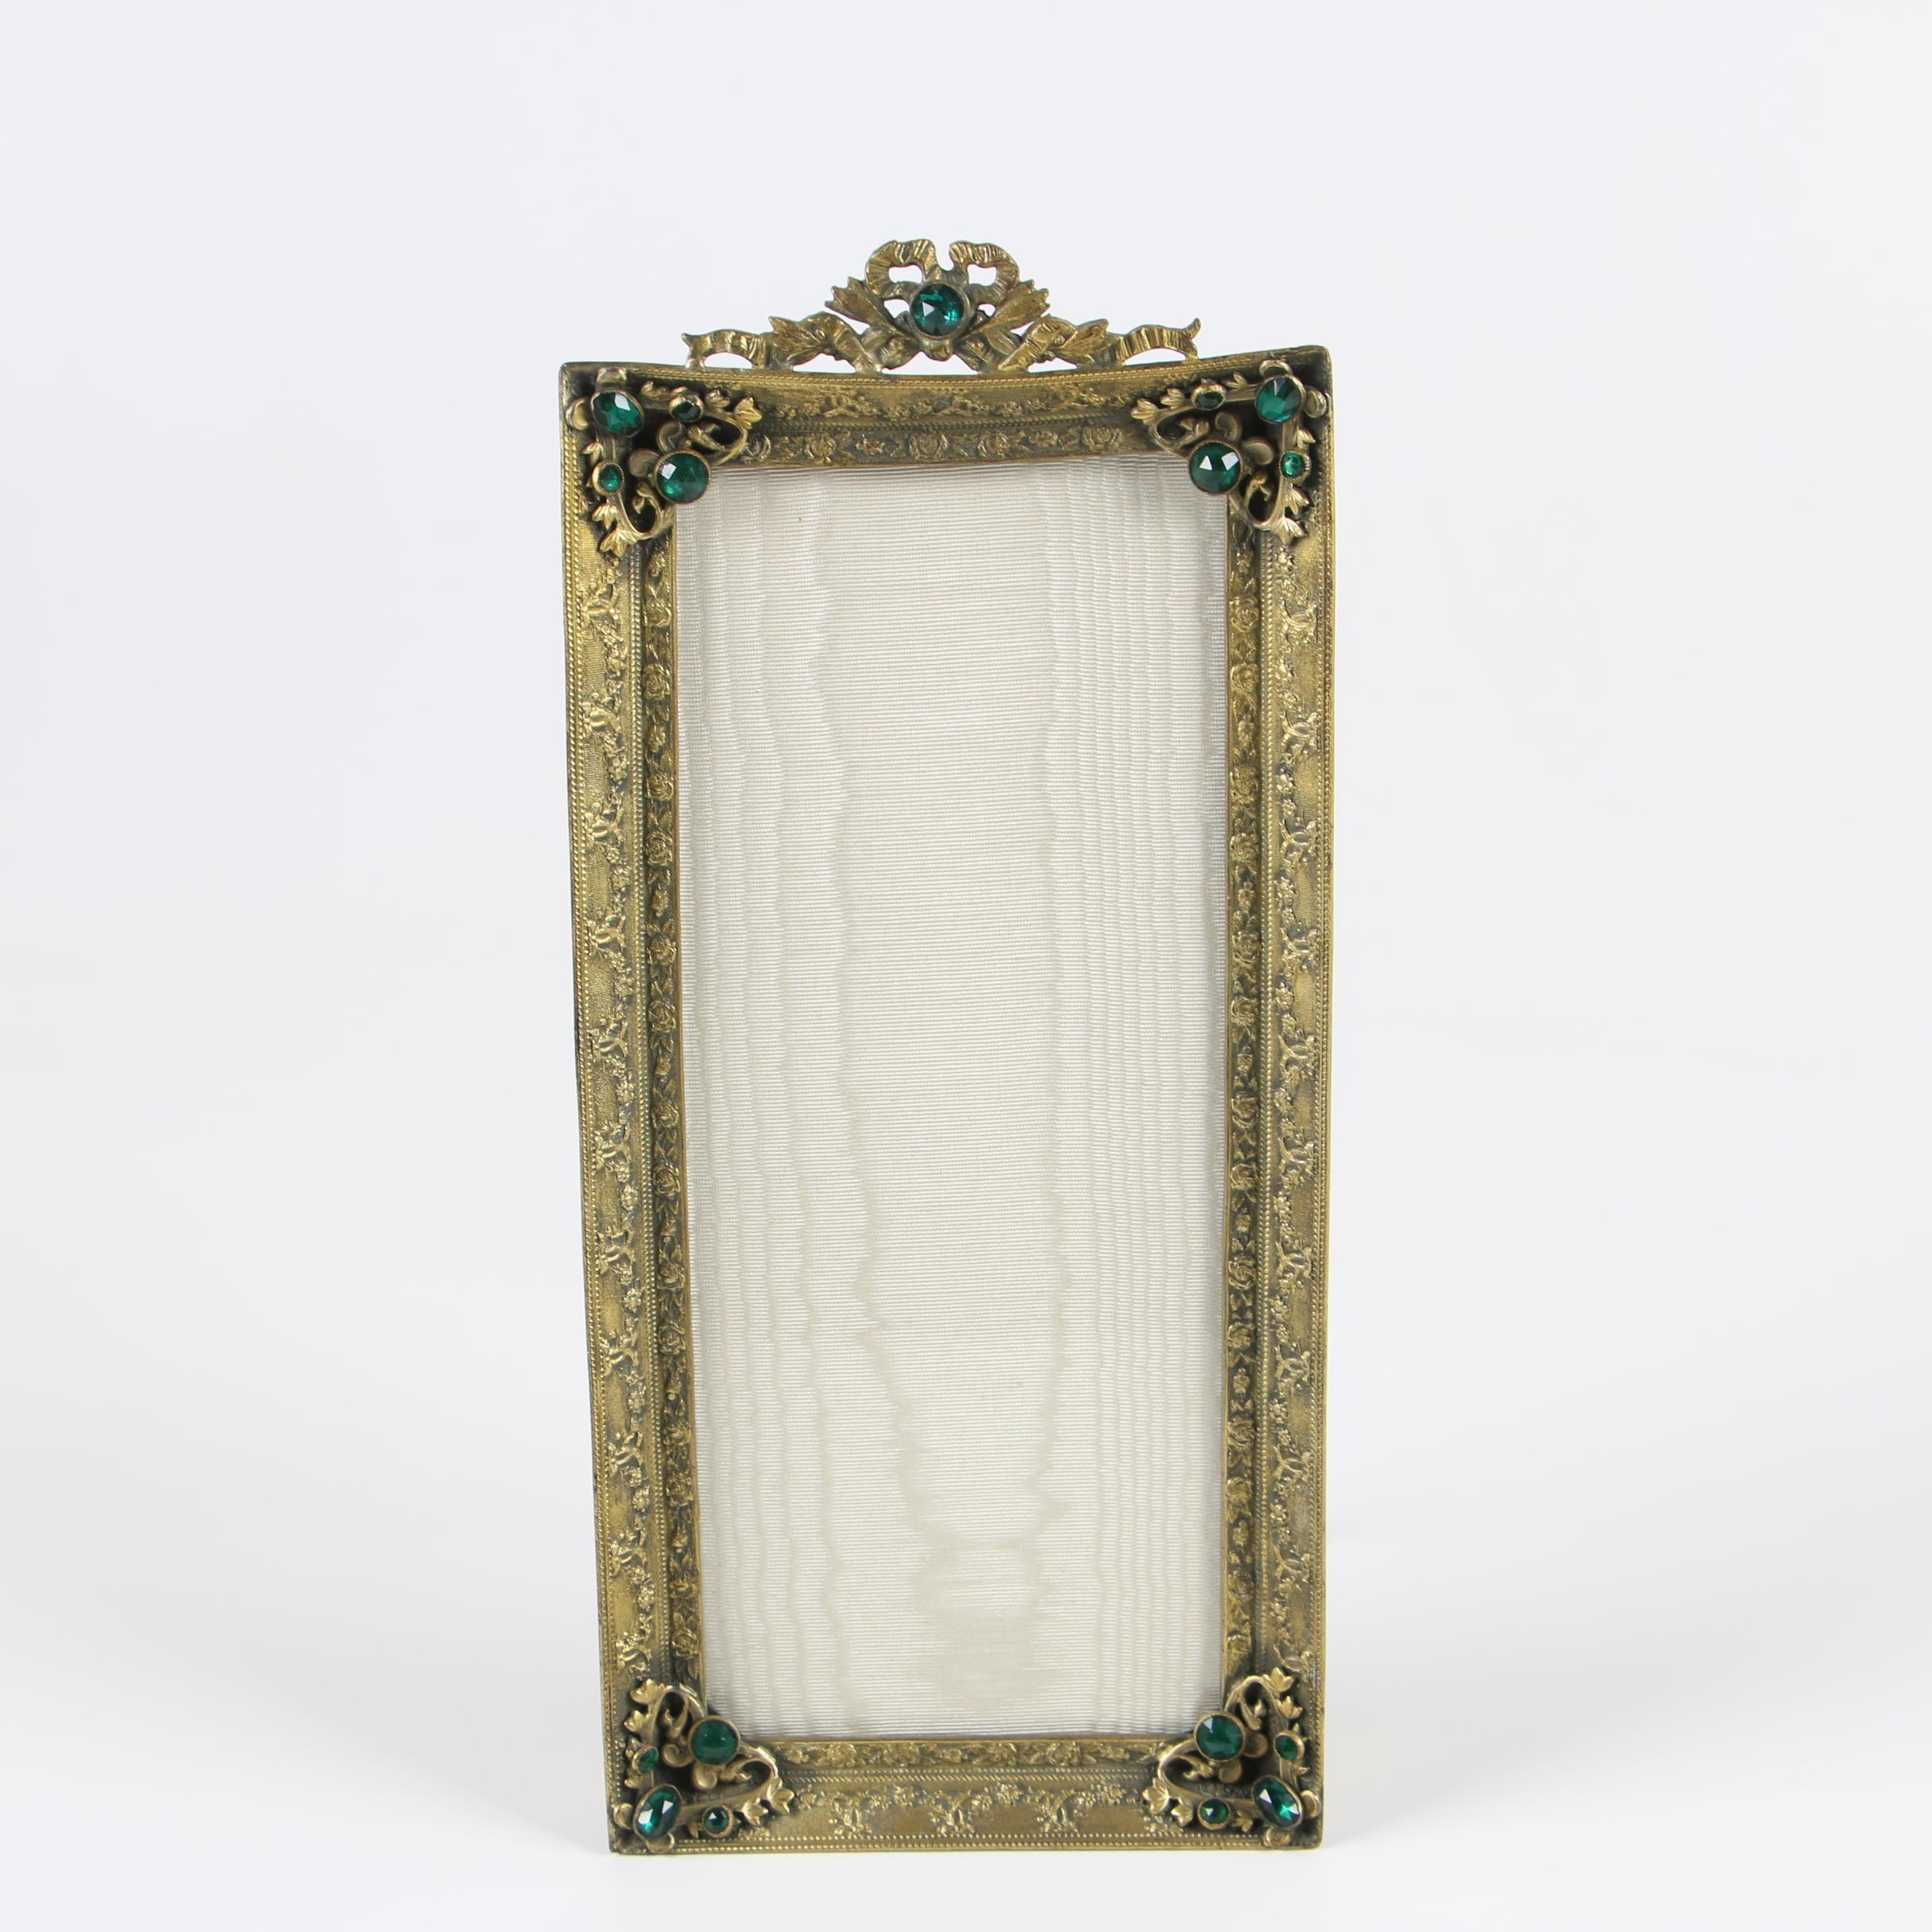 Brass Table Top Picture Frame with Glass Accents